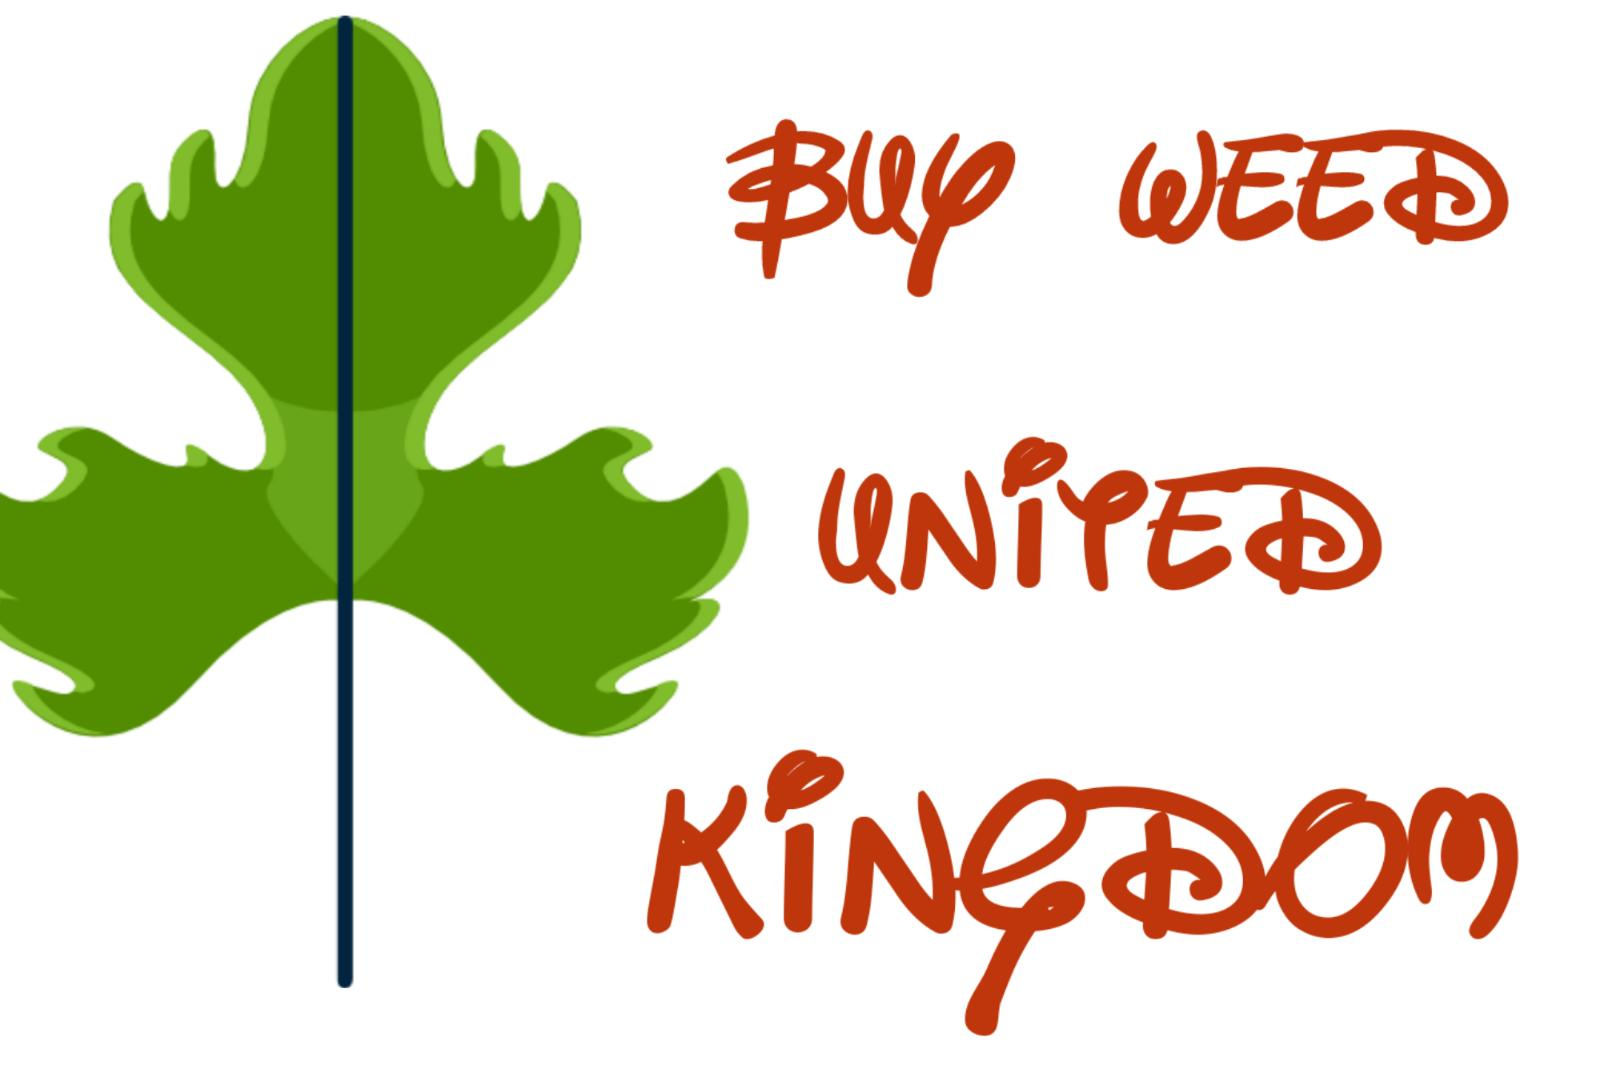 BUY WEED UNITED KINGDOM